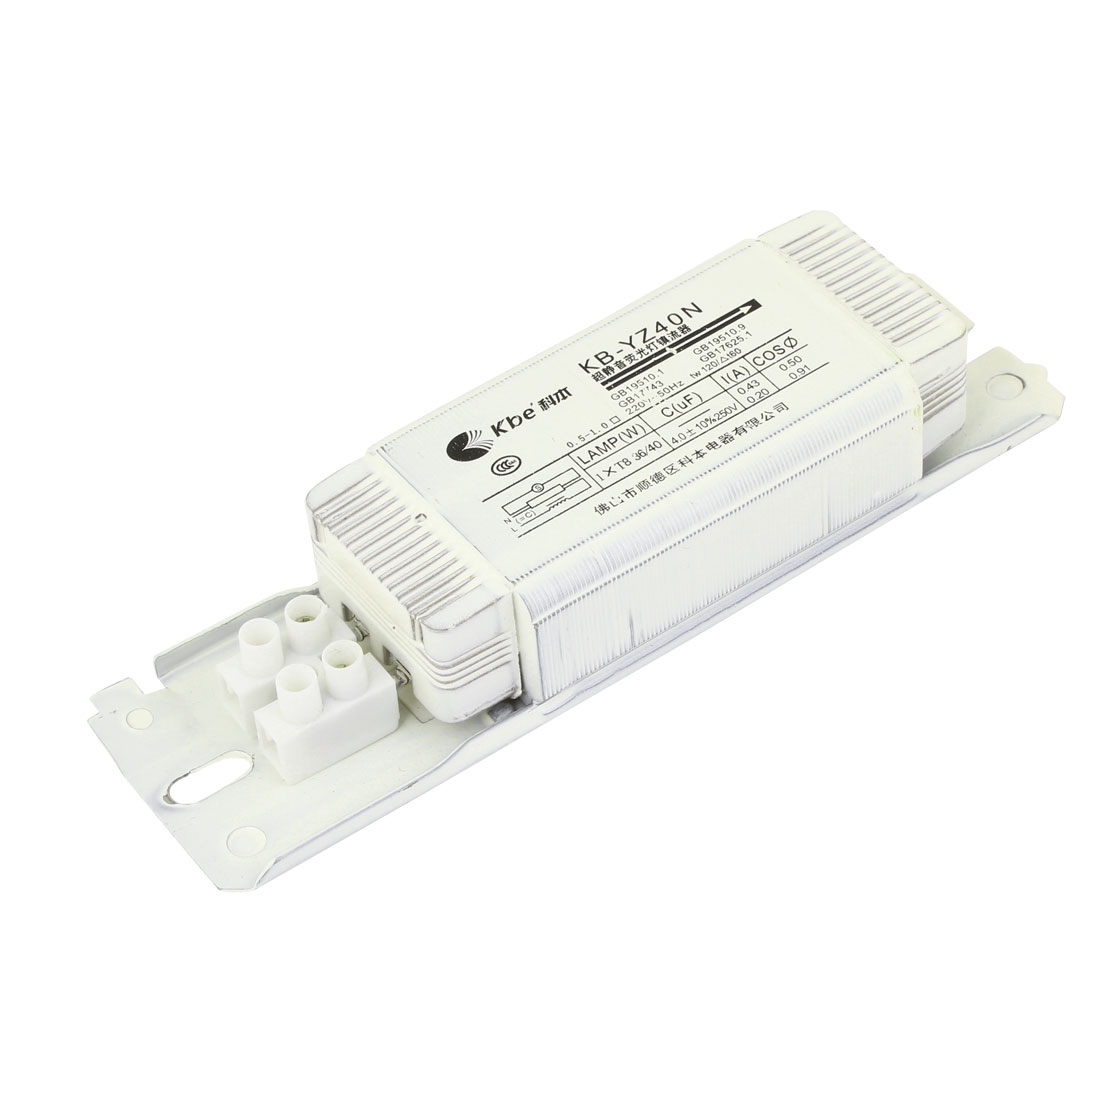 Metal Shell AC 220V 0.2A 40W Ballast for Fluorescent Light Lamp